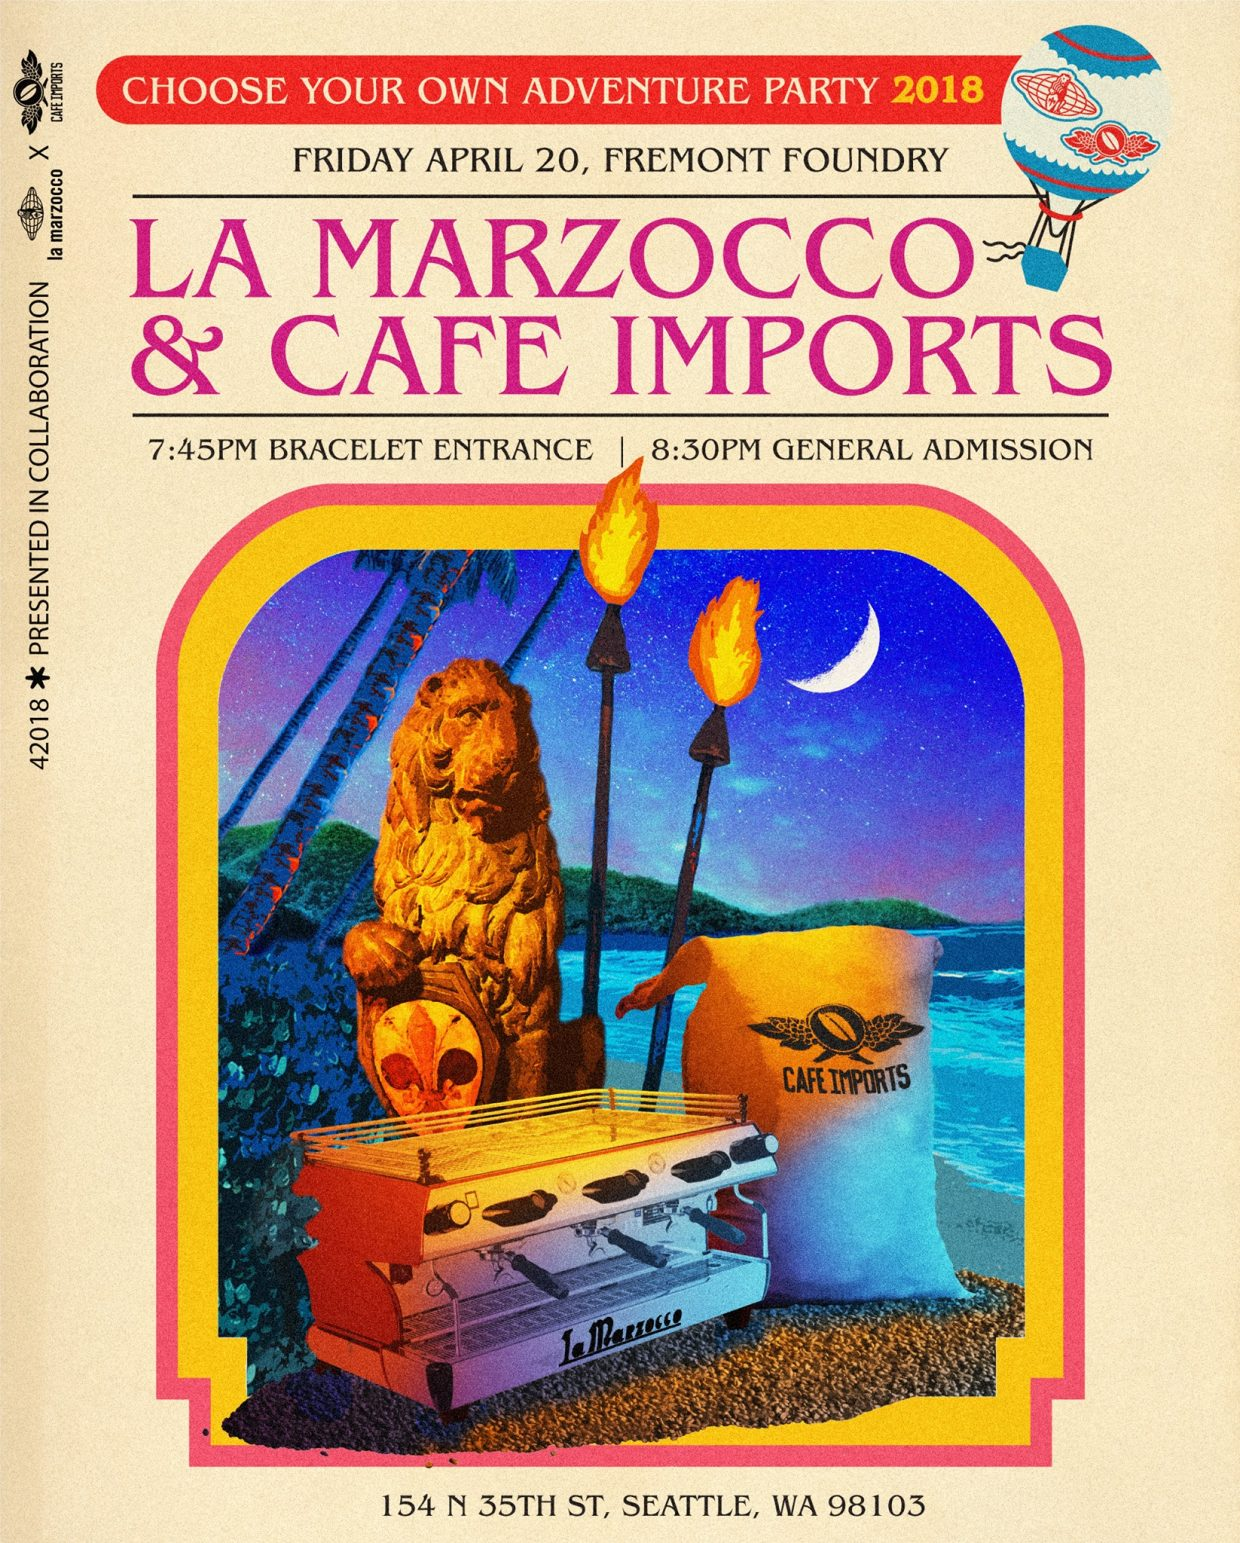 Cafe Imports and La Marzocco